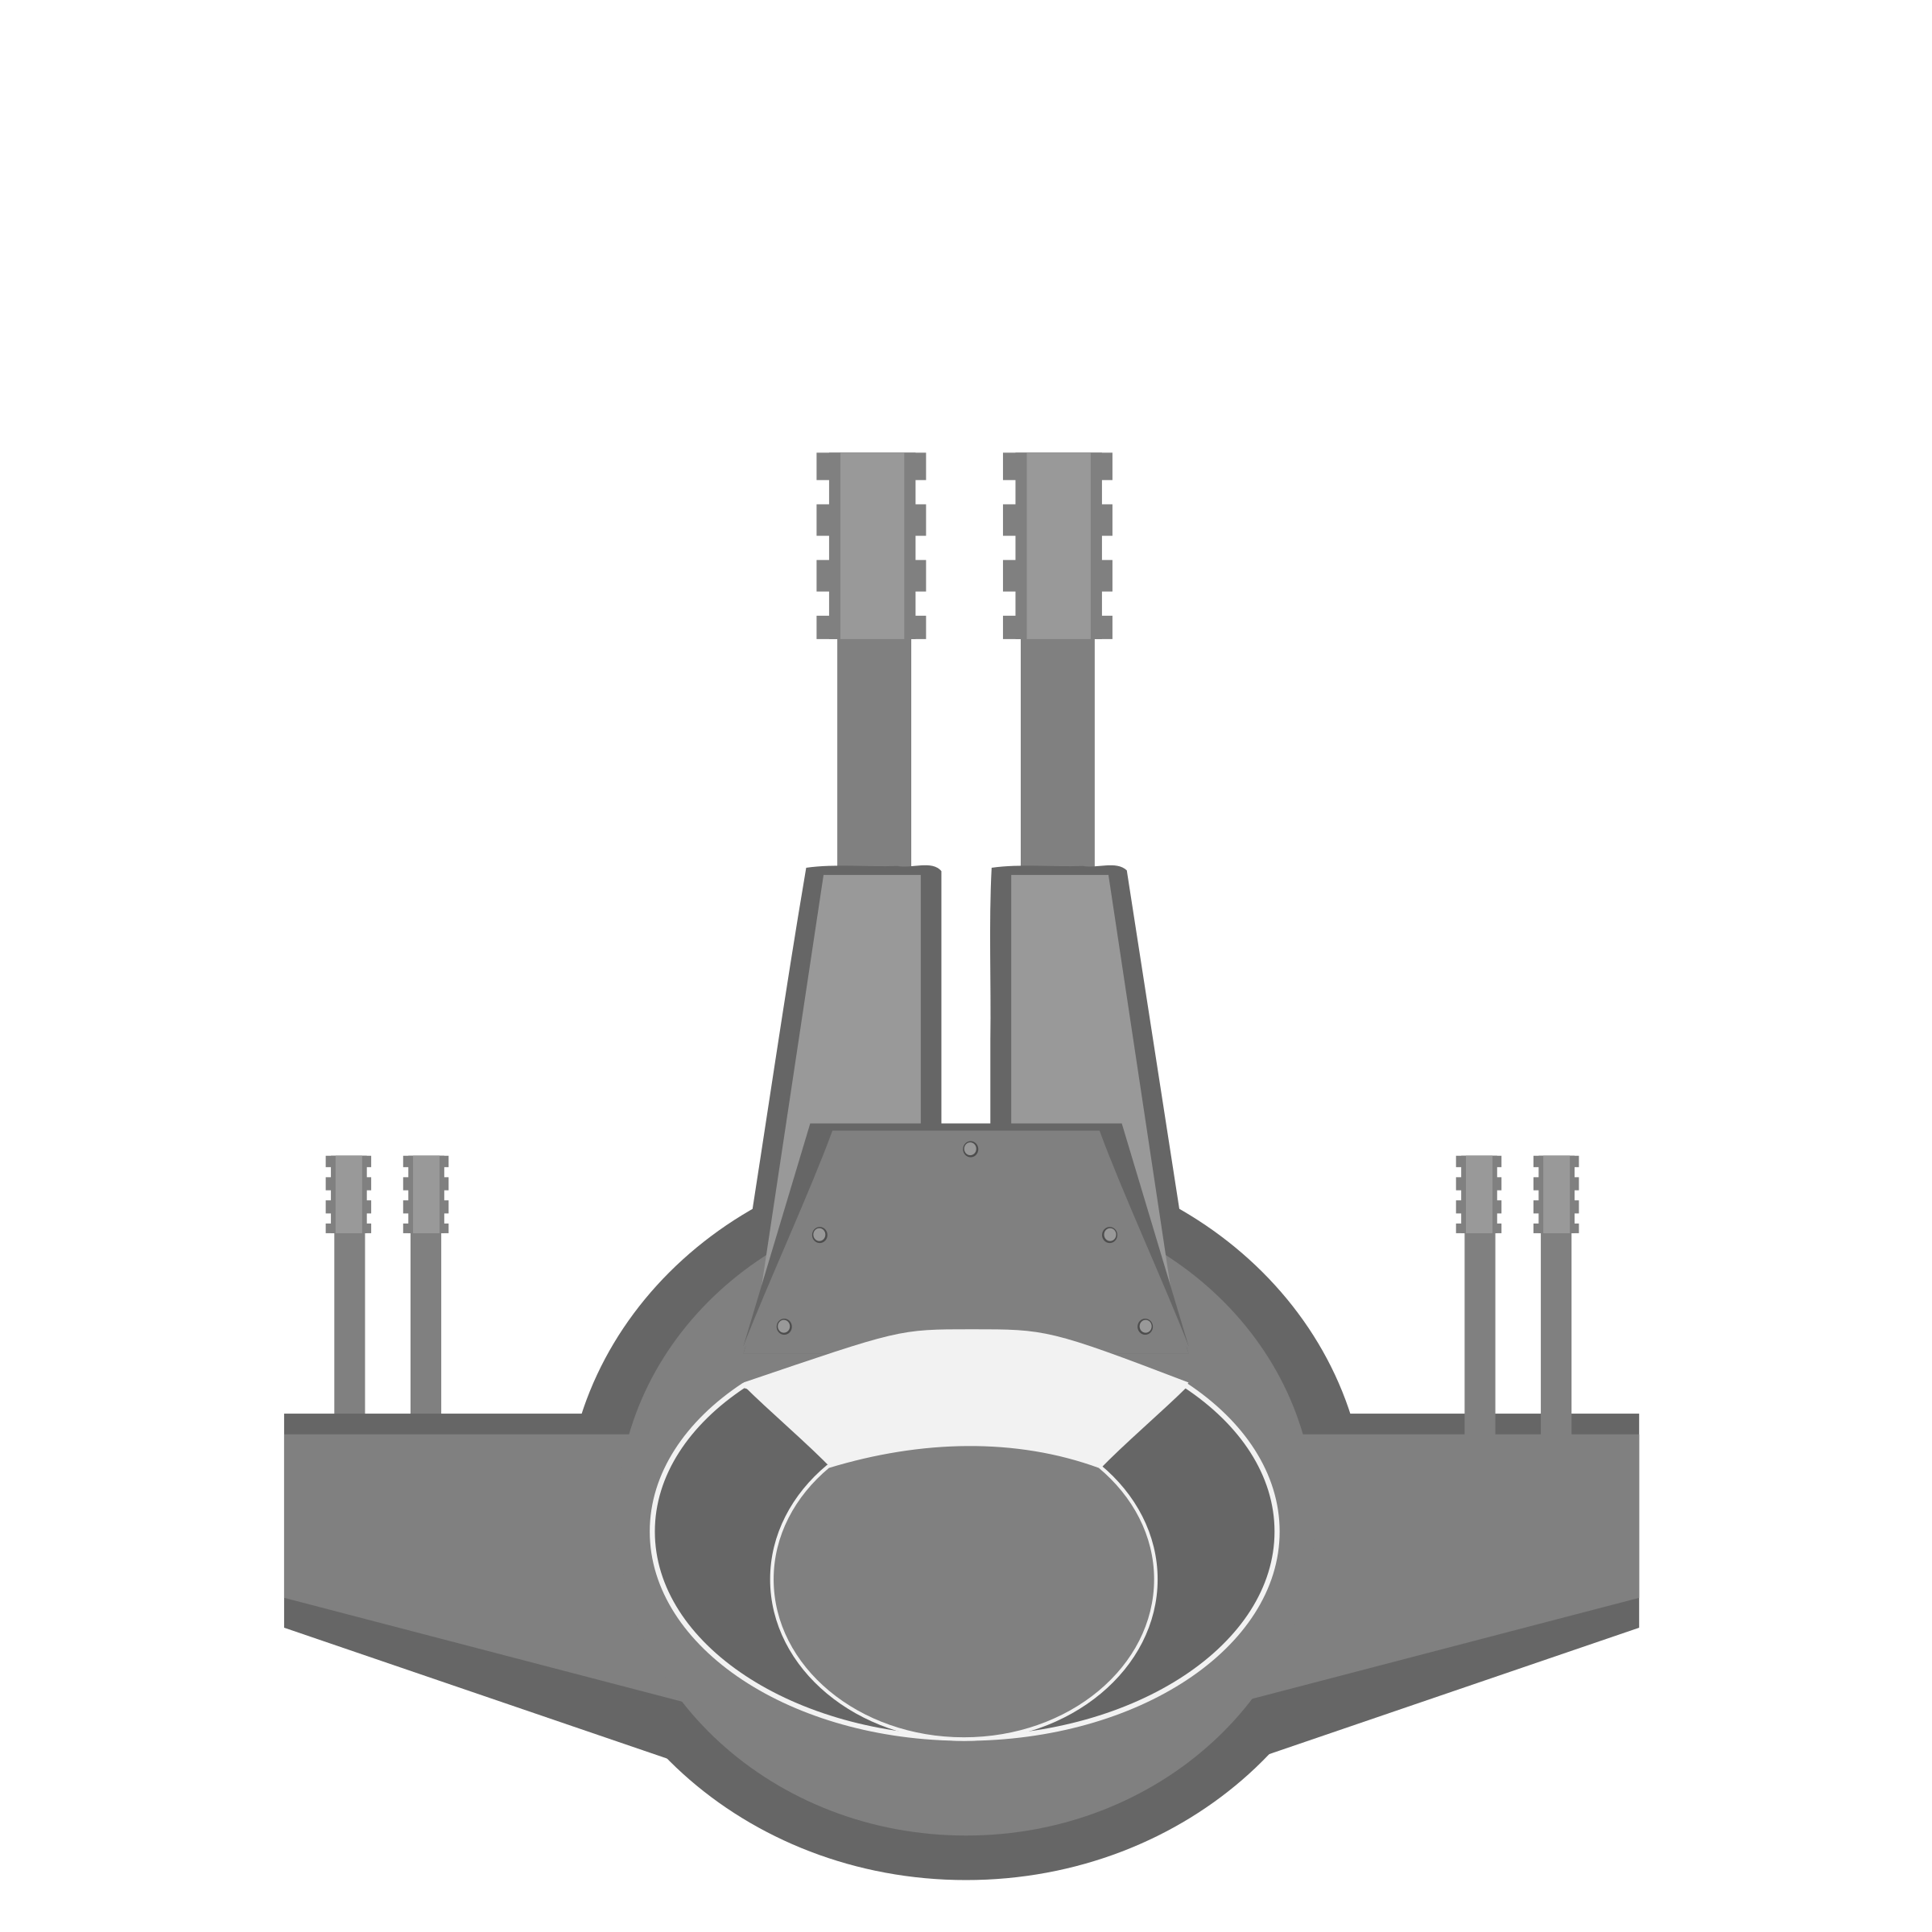 Spaceship clipart space fighter. Big image png